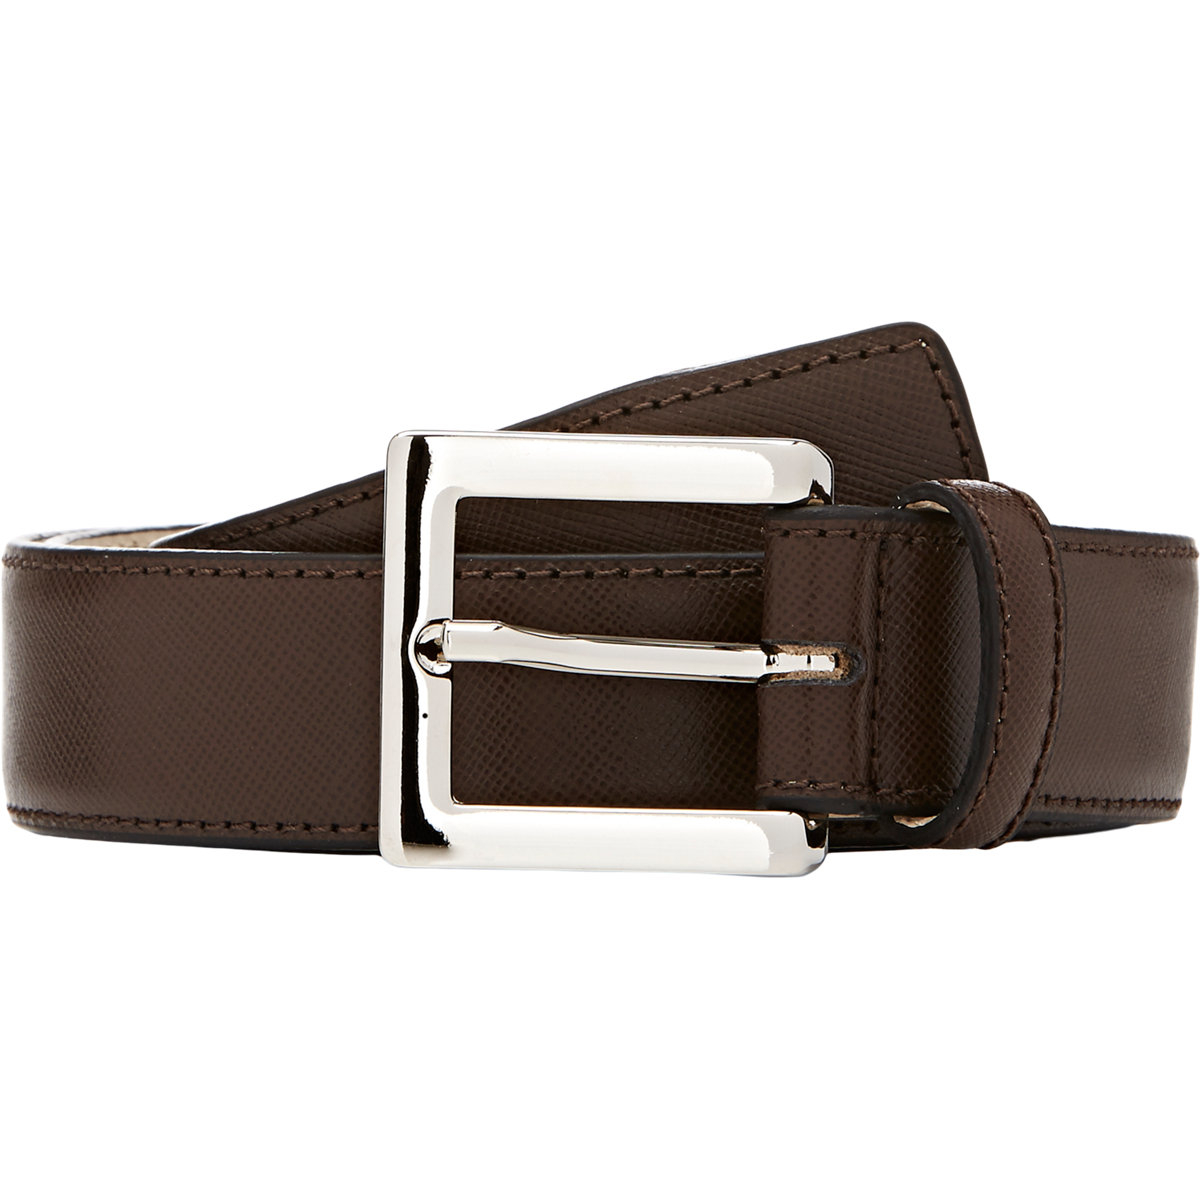 barneys new york saffiano leather belt in brown for lyst